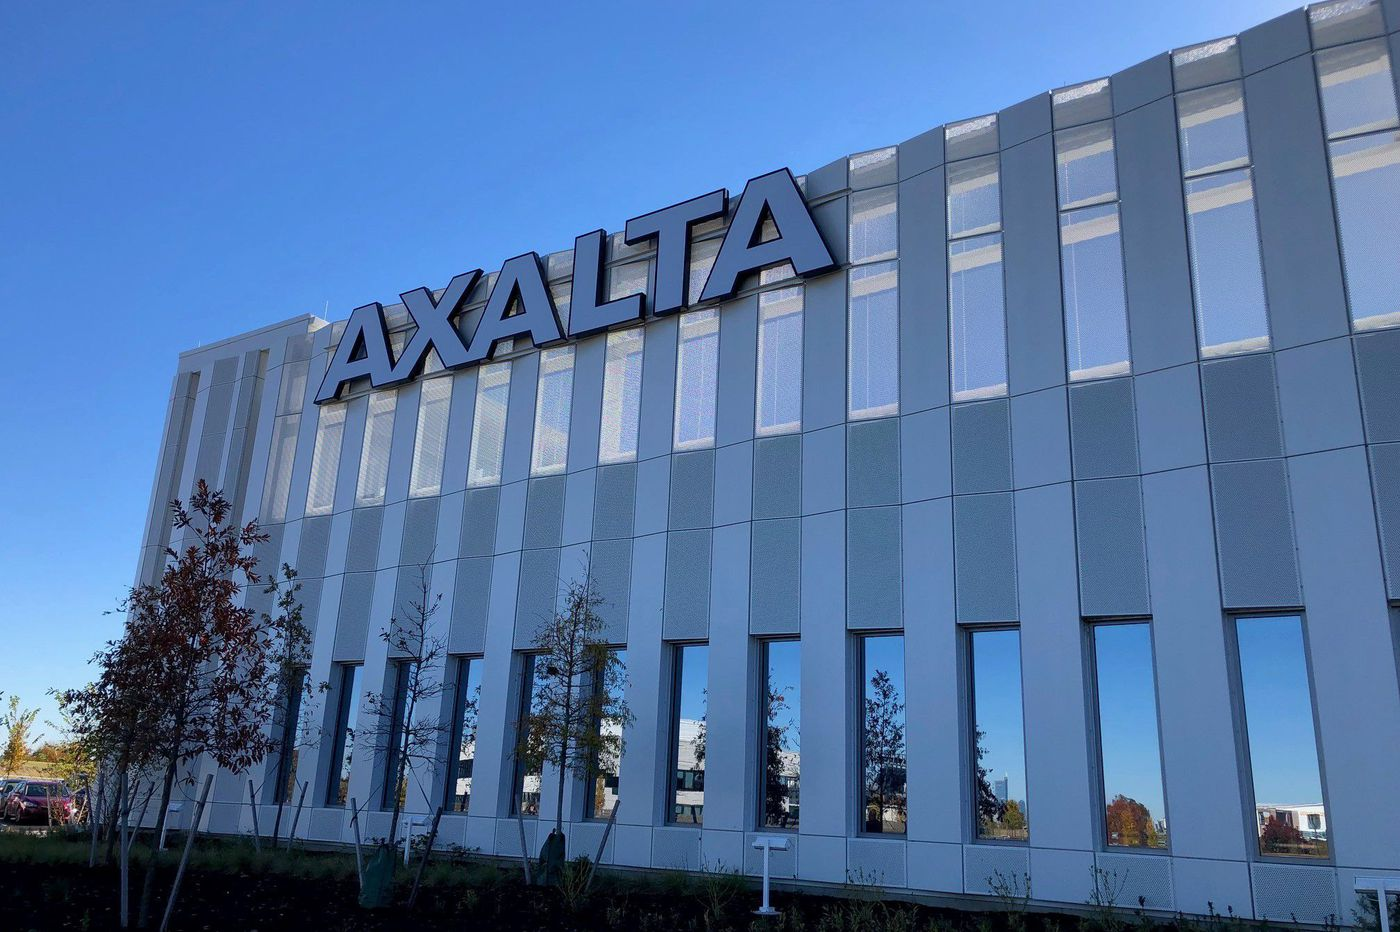 Kuwaiti group buys Axalta building in South Philly's Navy Yard for $61.2 million